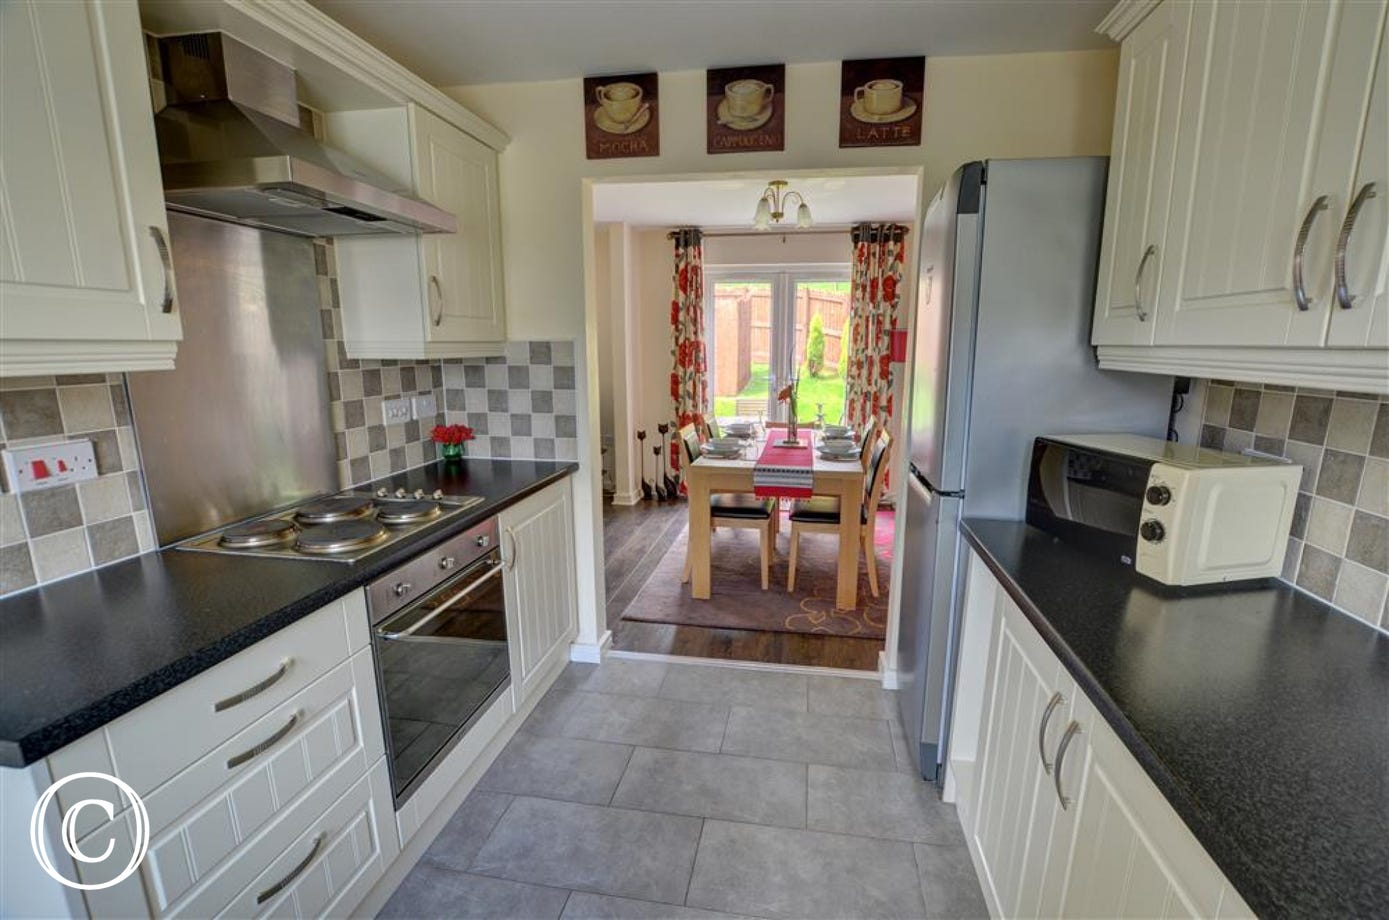 The attractive kitchen leads to the dining area and out to the garden